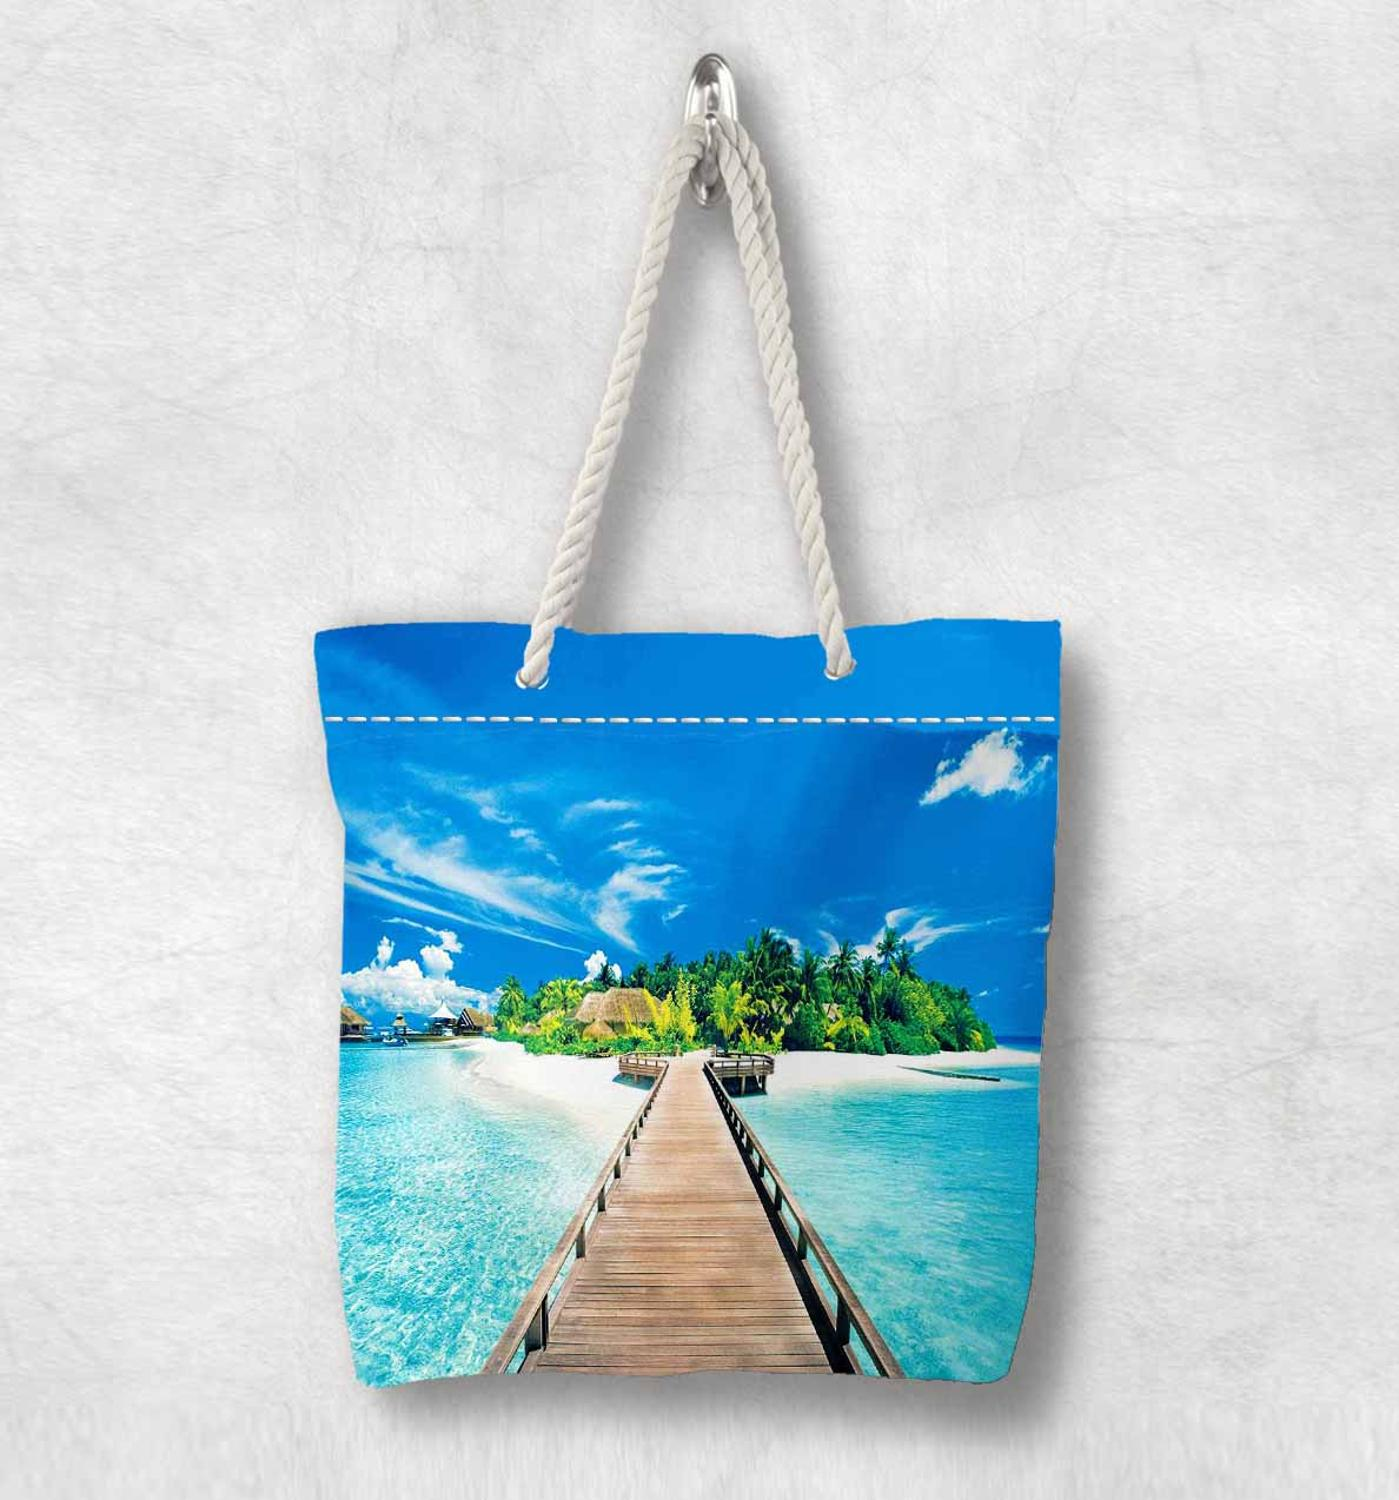 Else Blue Sky Tropical Island Wood Bridge New Fashion White Rope Handle Canvas Bag Cotton Canvas Zippered Tote Bag Shoulder Bag